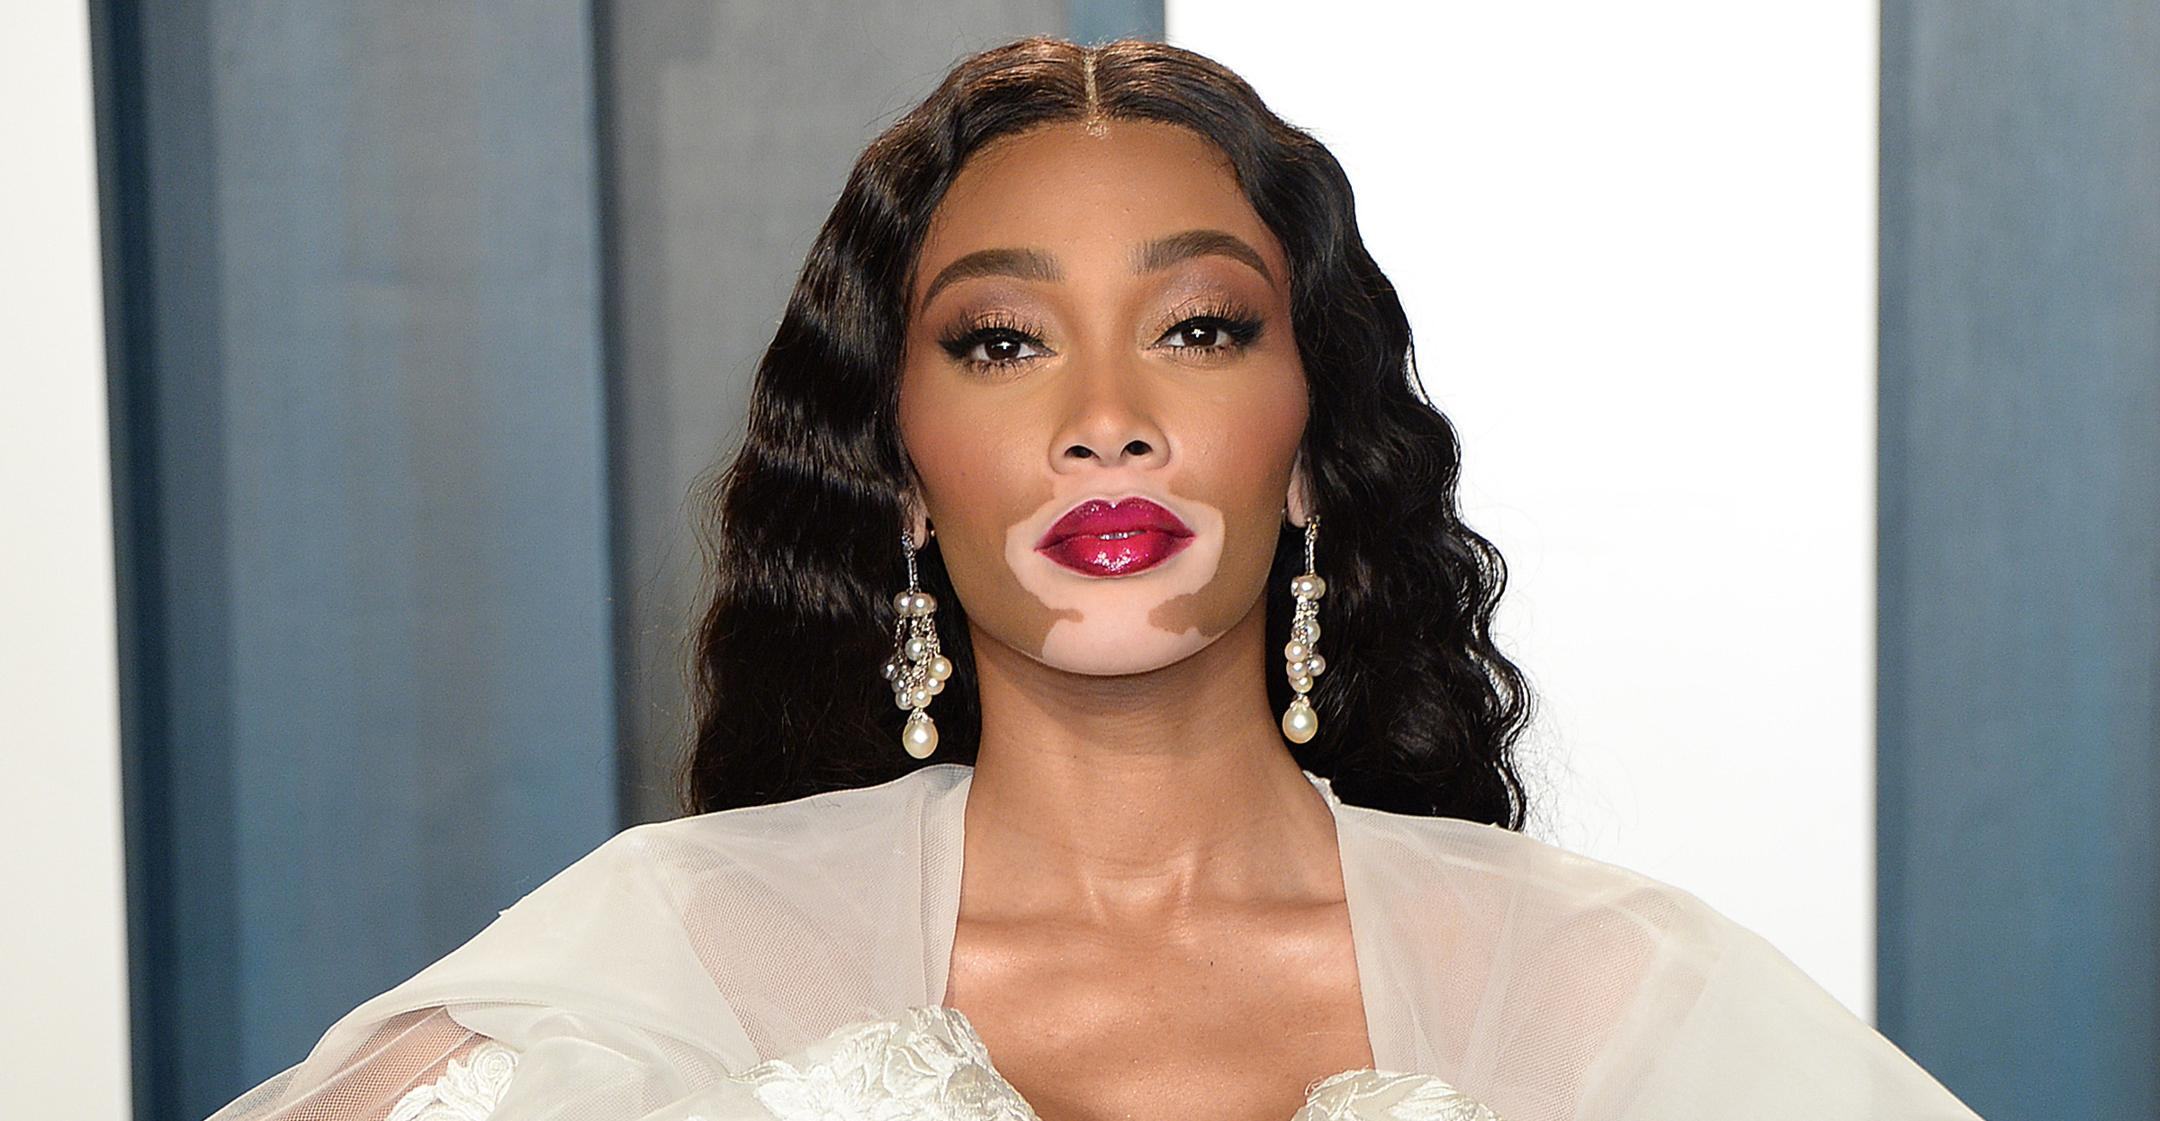 winnie harlow made to feel she couldnt succeed as model confidence helped persevere